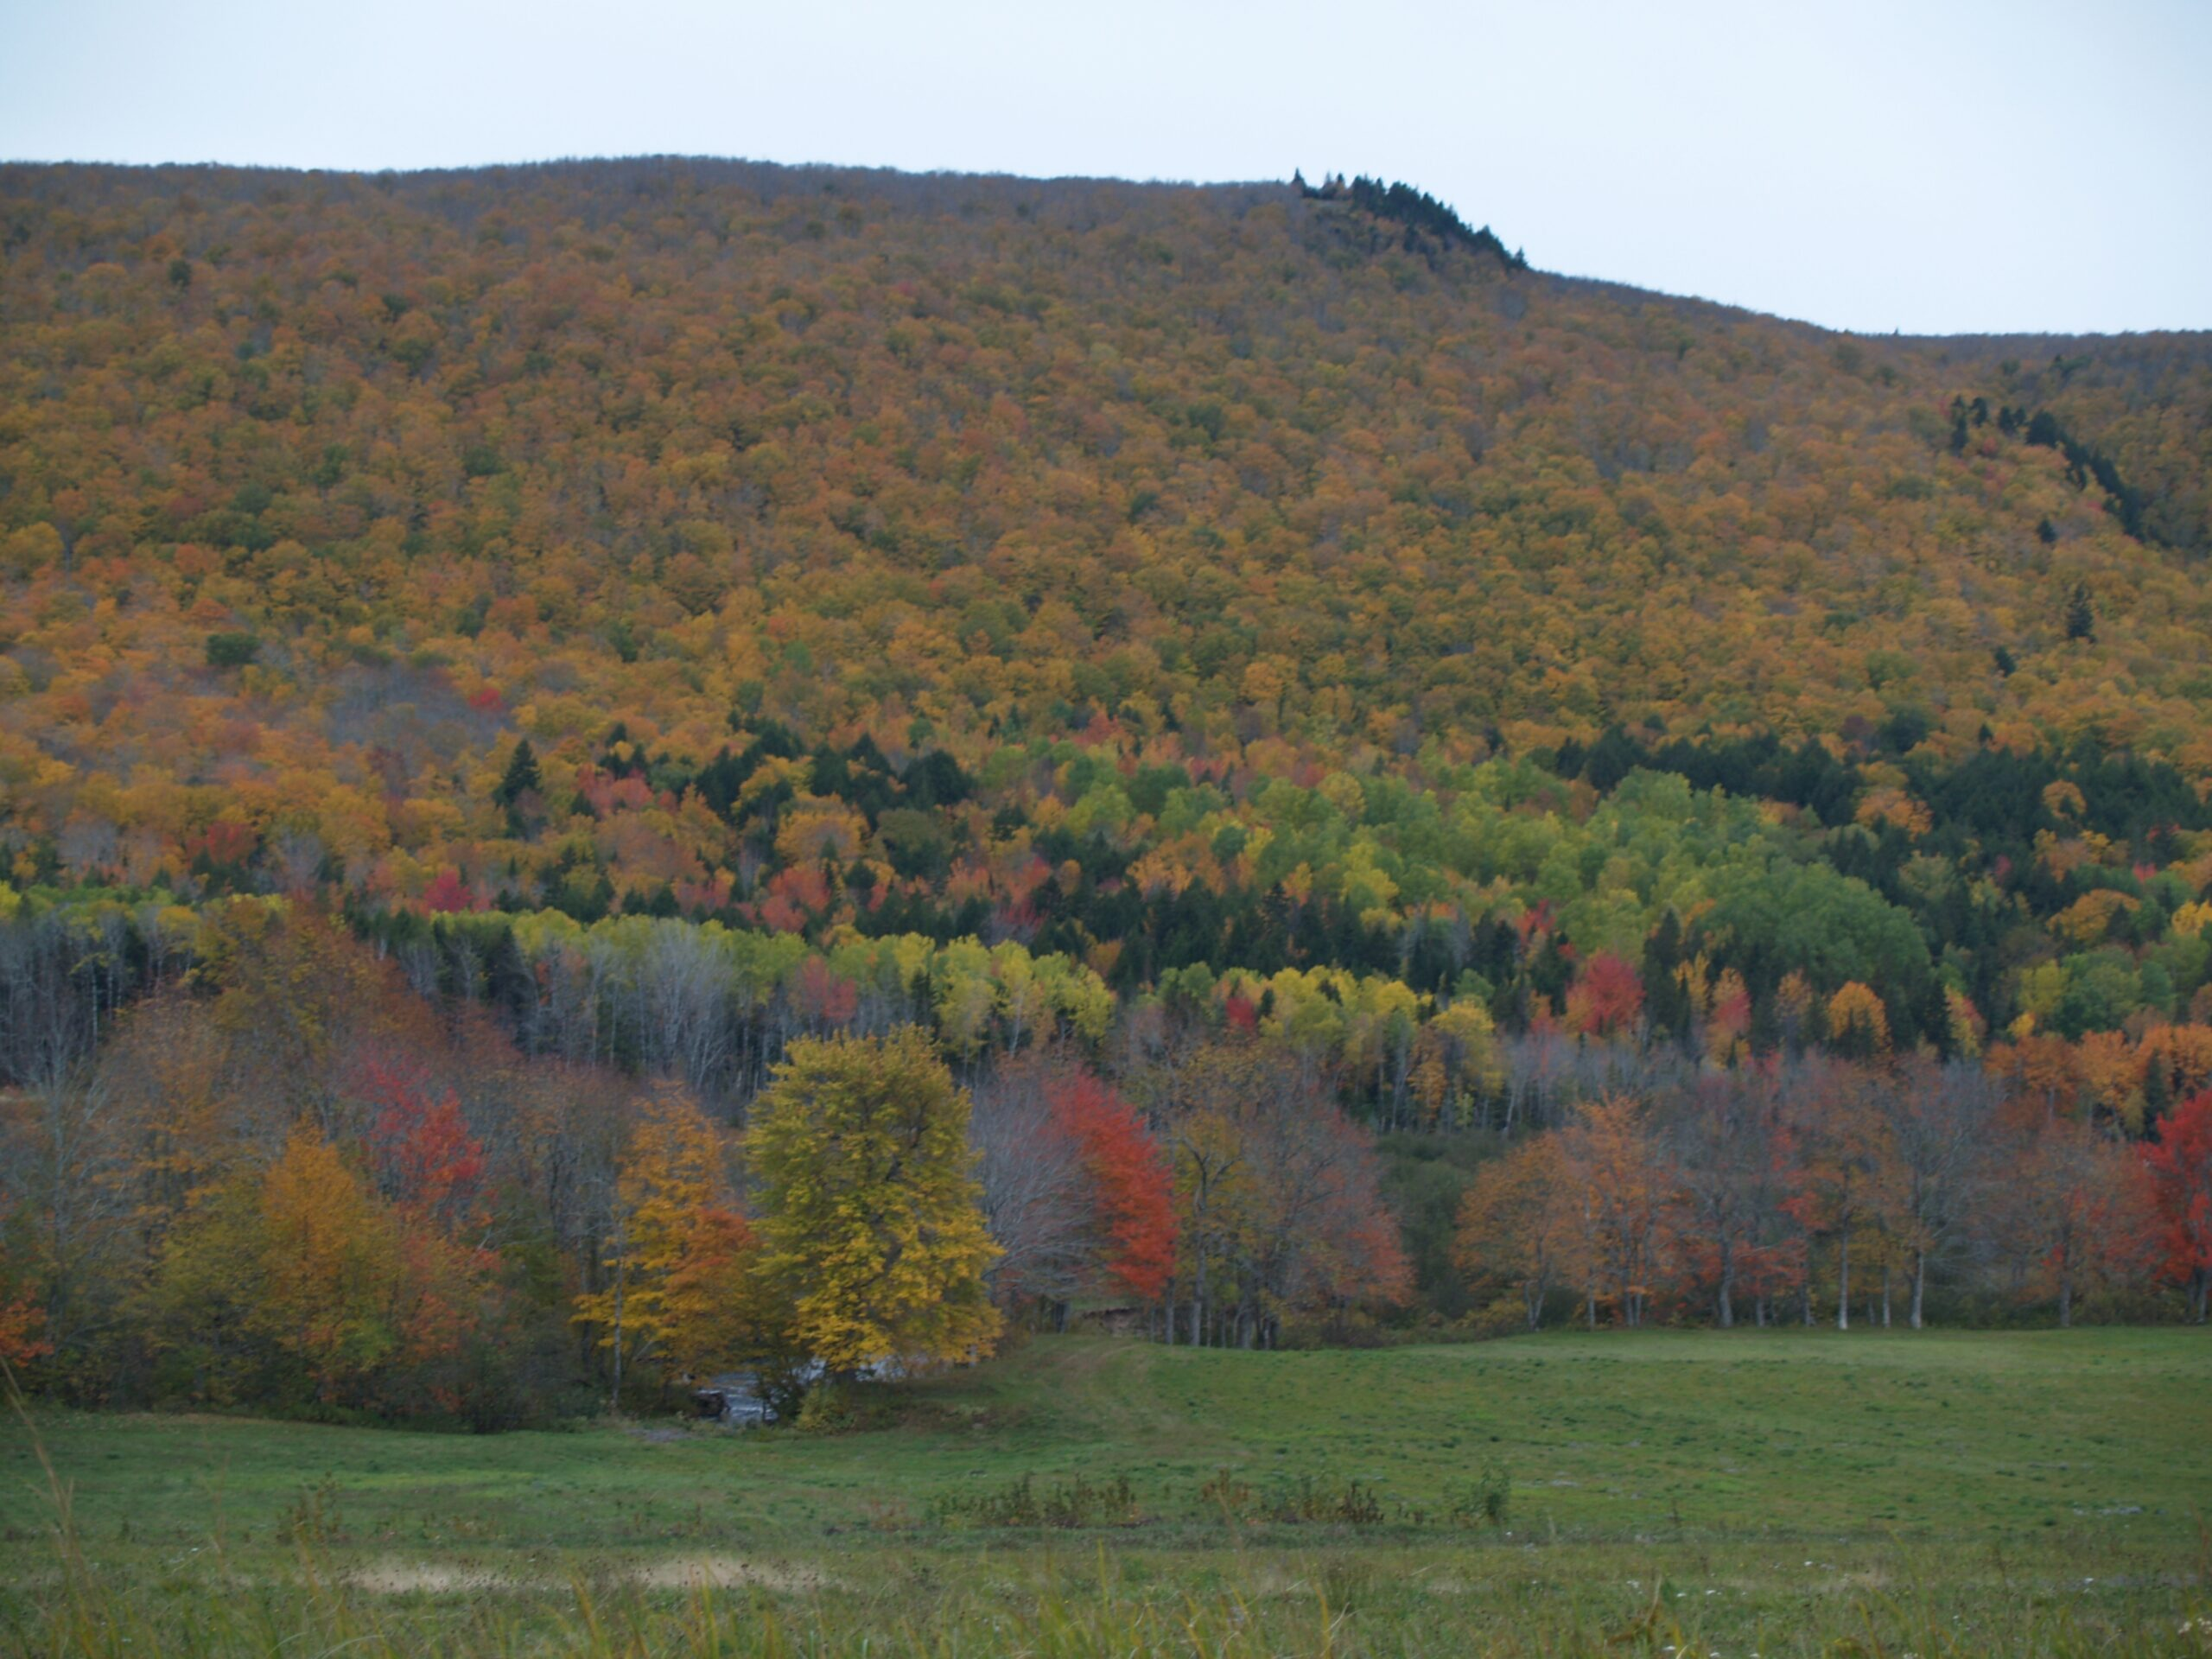 Fall foliage in temperate forest at High Head, Wentworth, Nova Scotia. Photo Joan Baxter